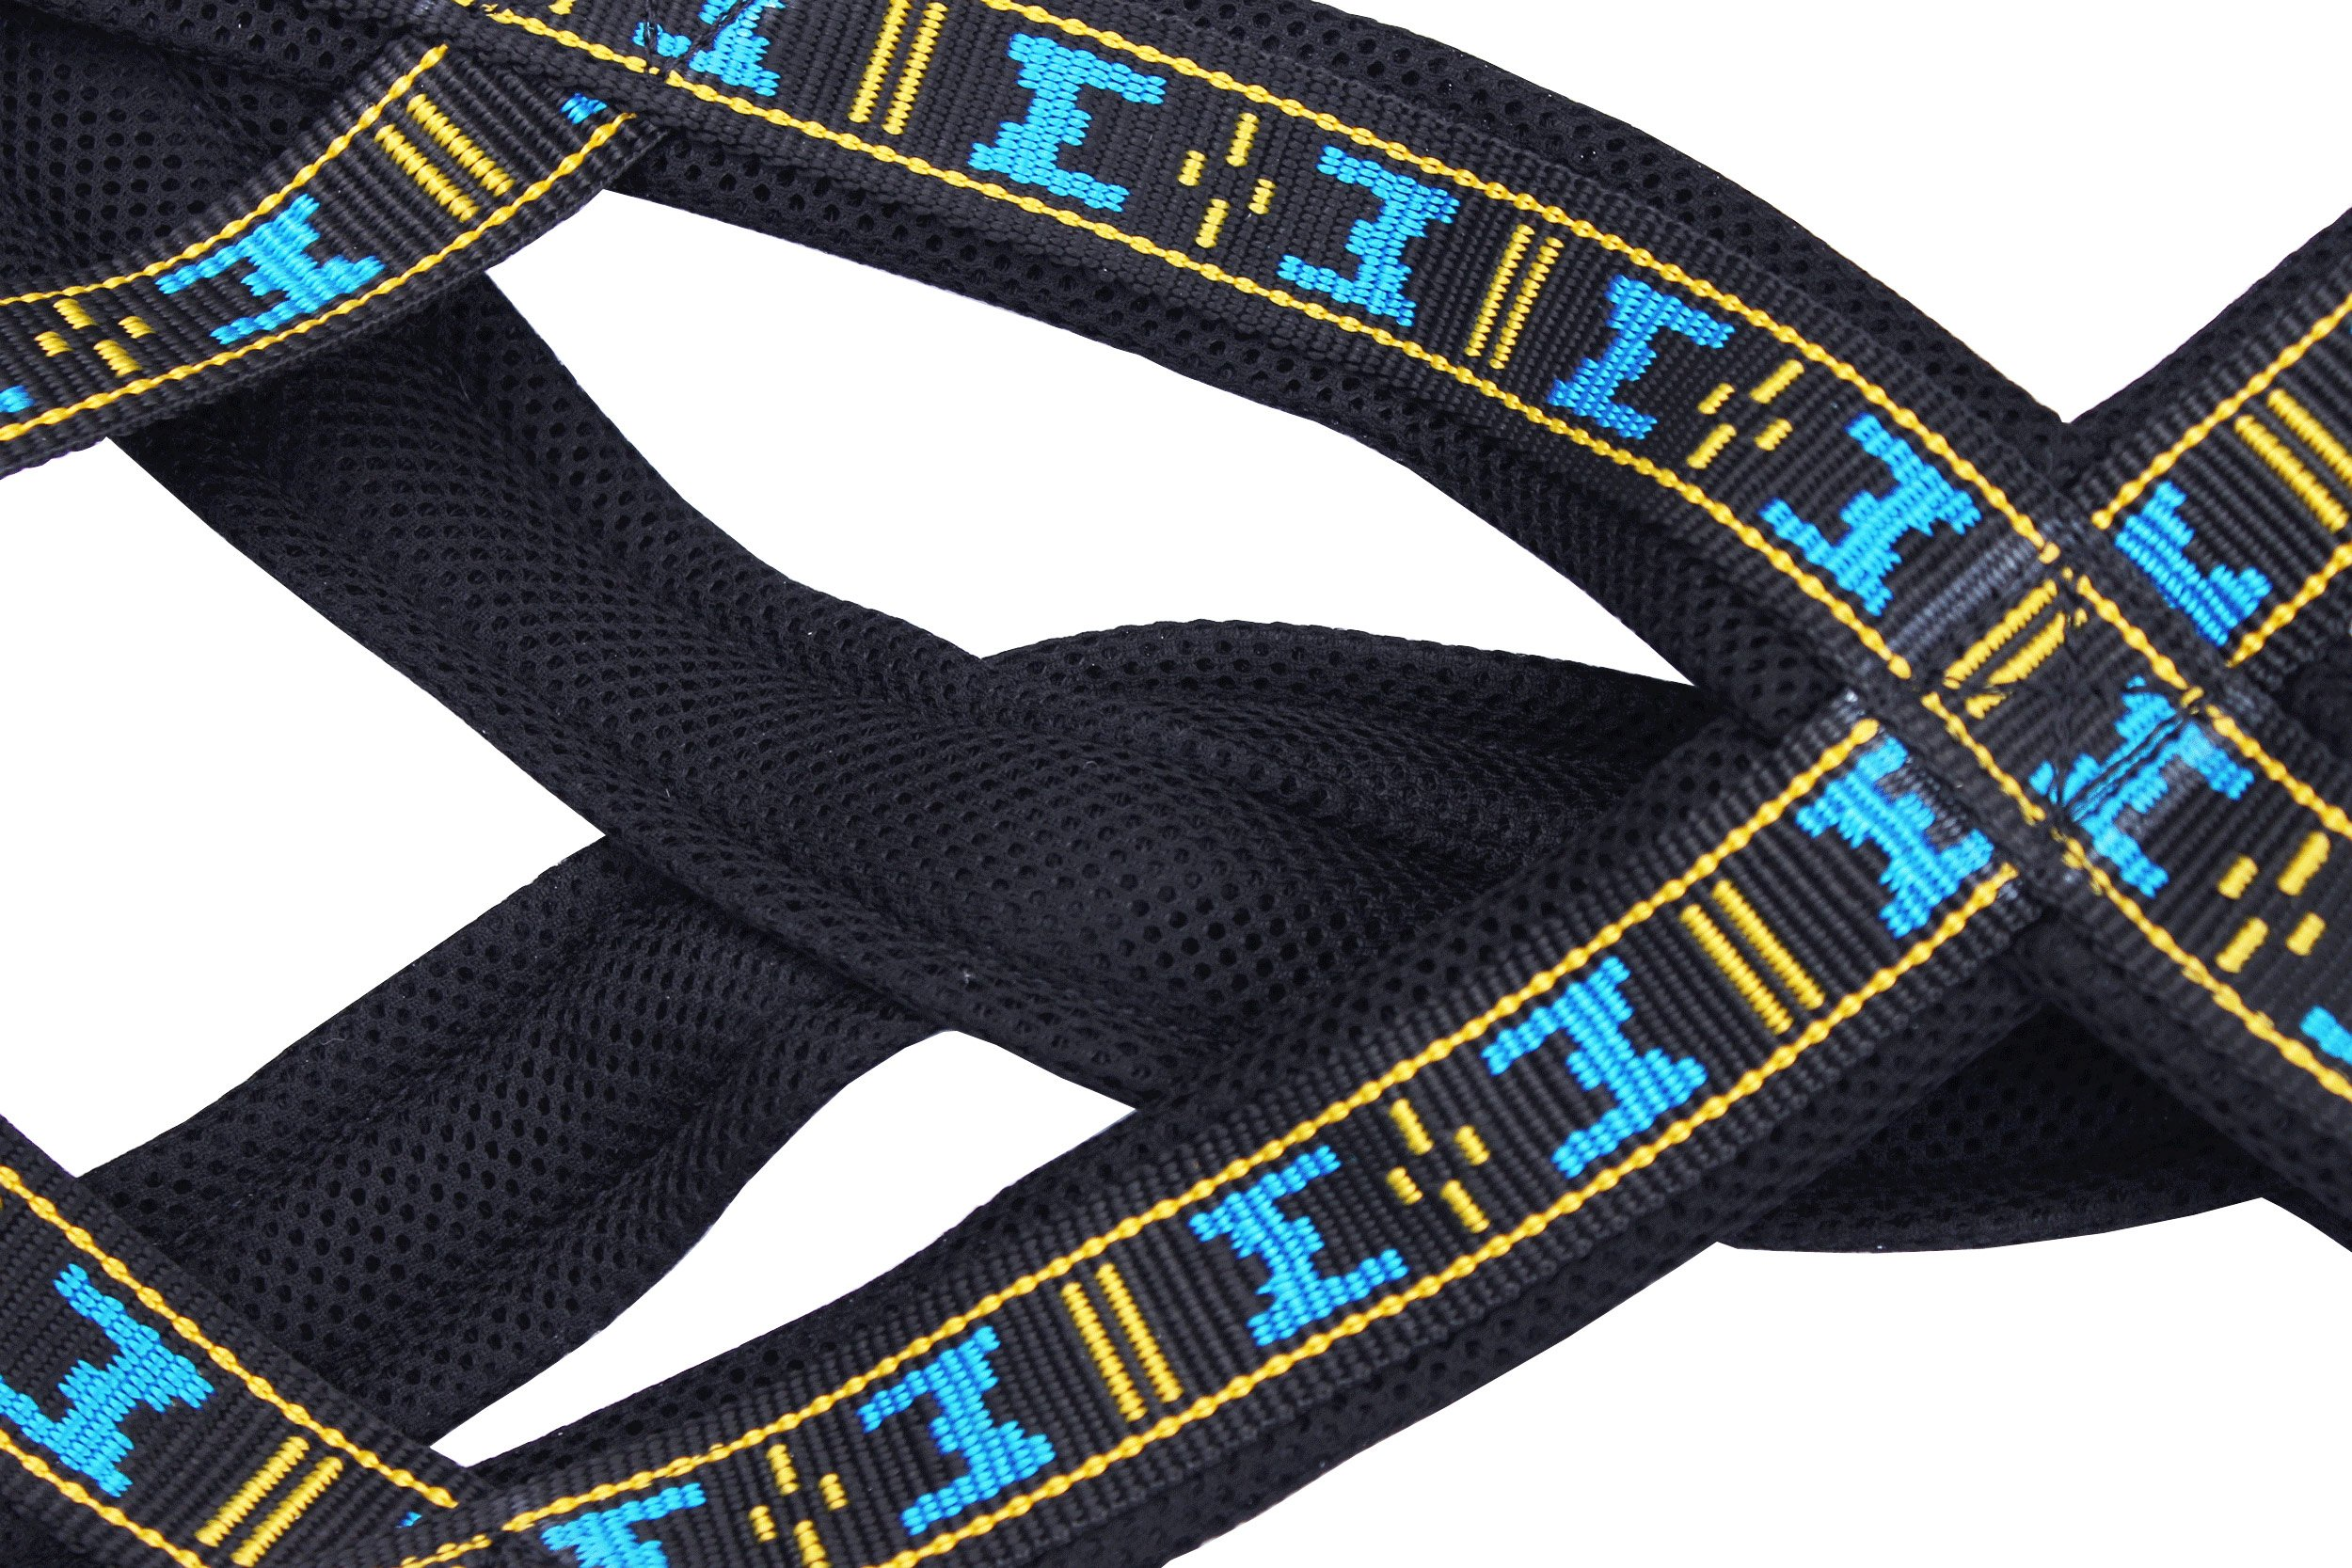 Weight Pulling Sledding Dog Harness X-Back Style Black Small, 18'' Neck Circumference by Dogs My Love (Image #3)